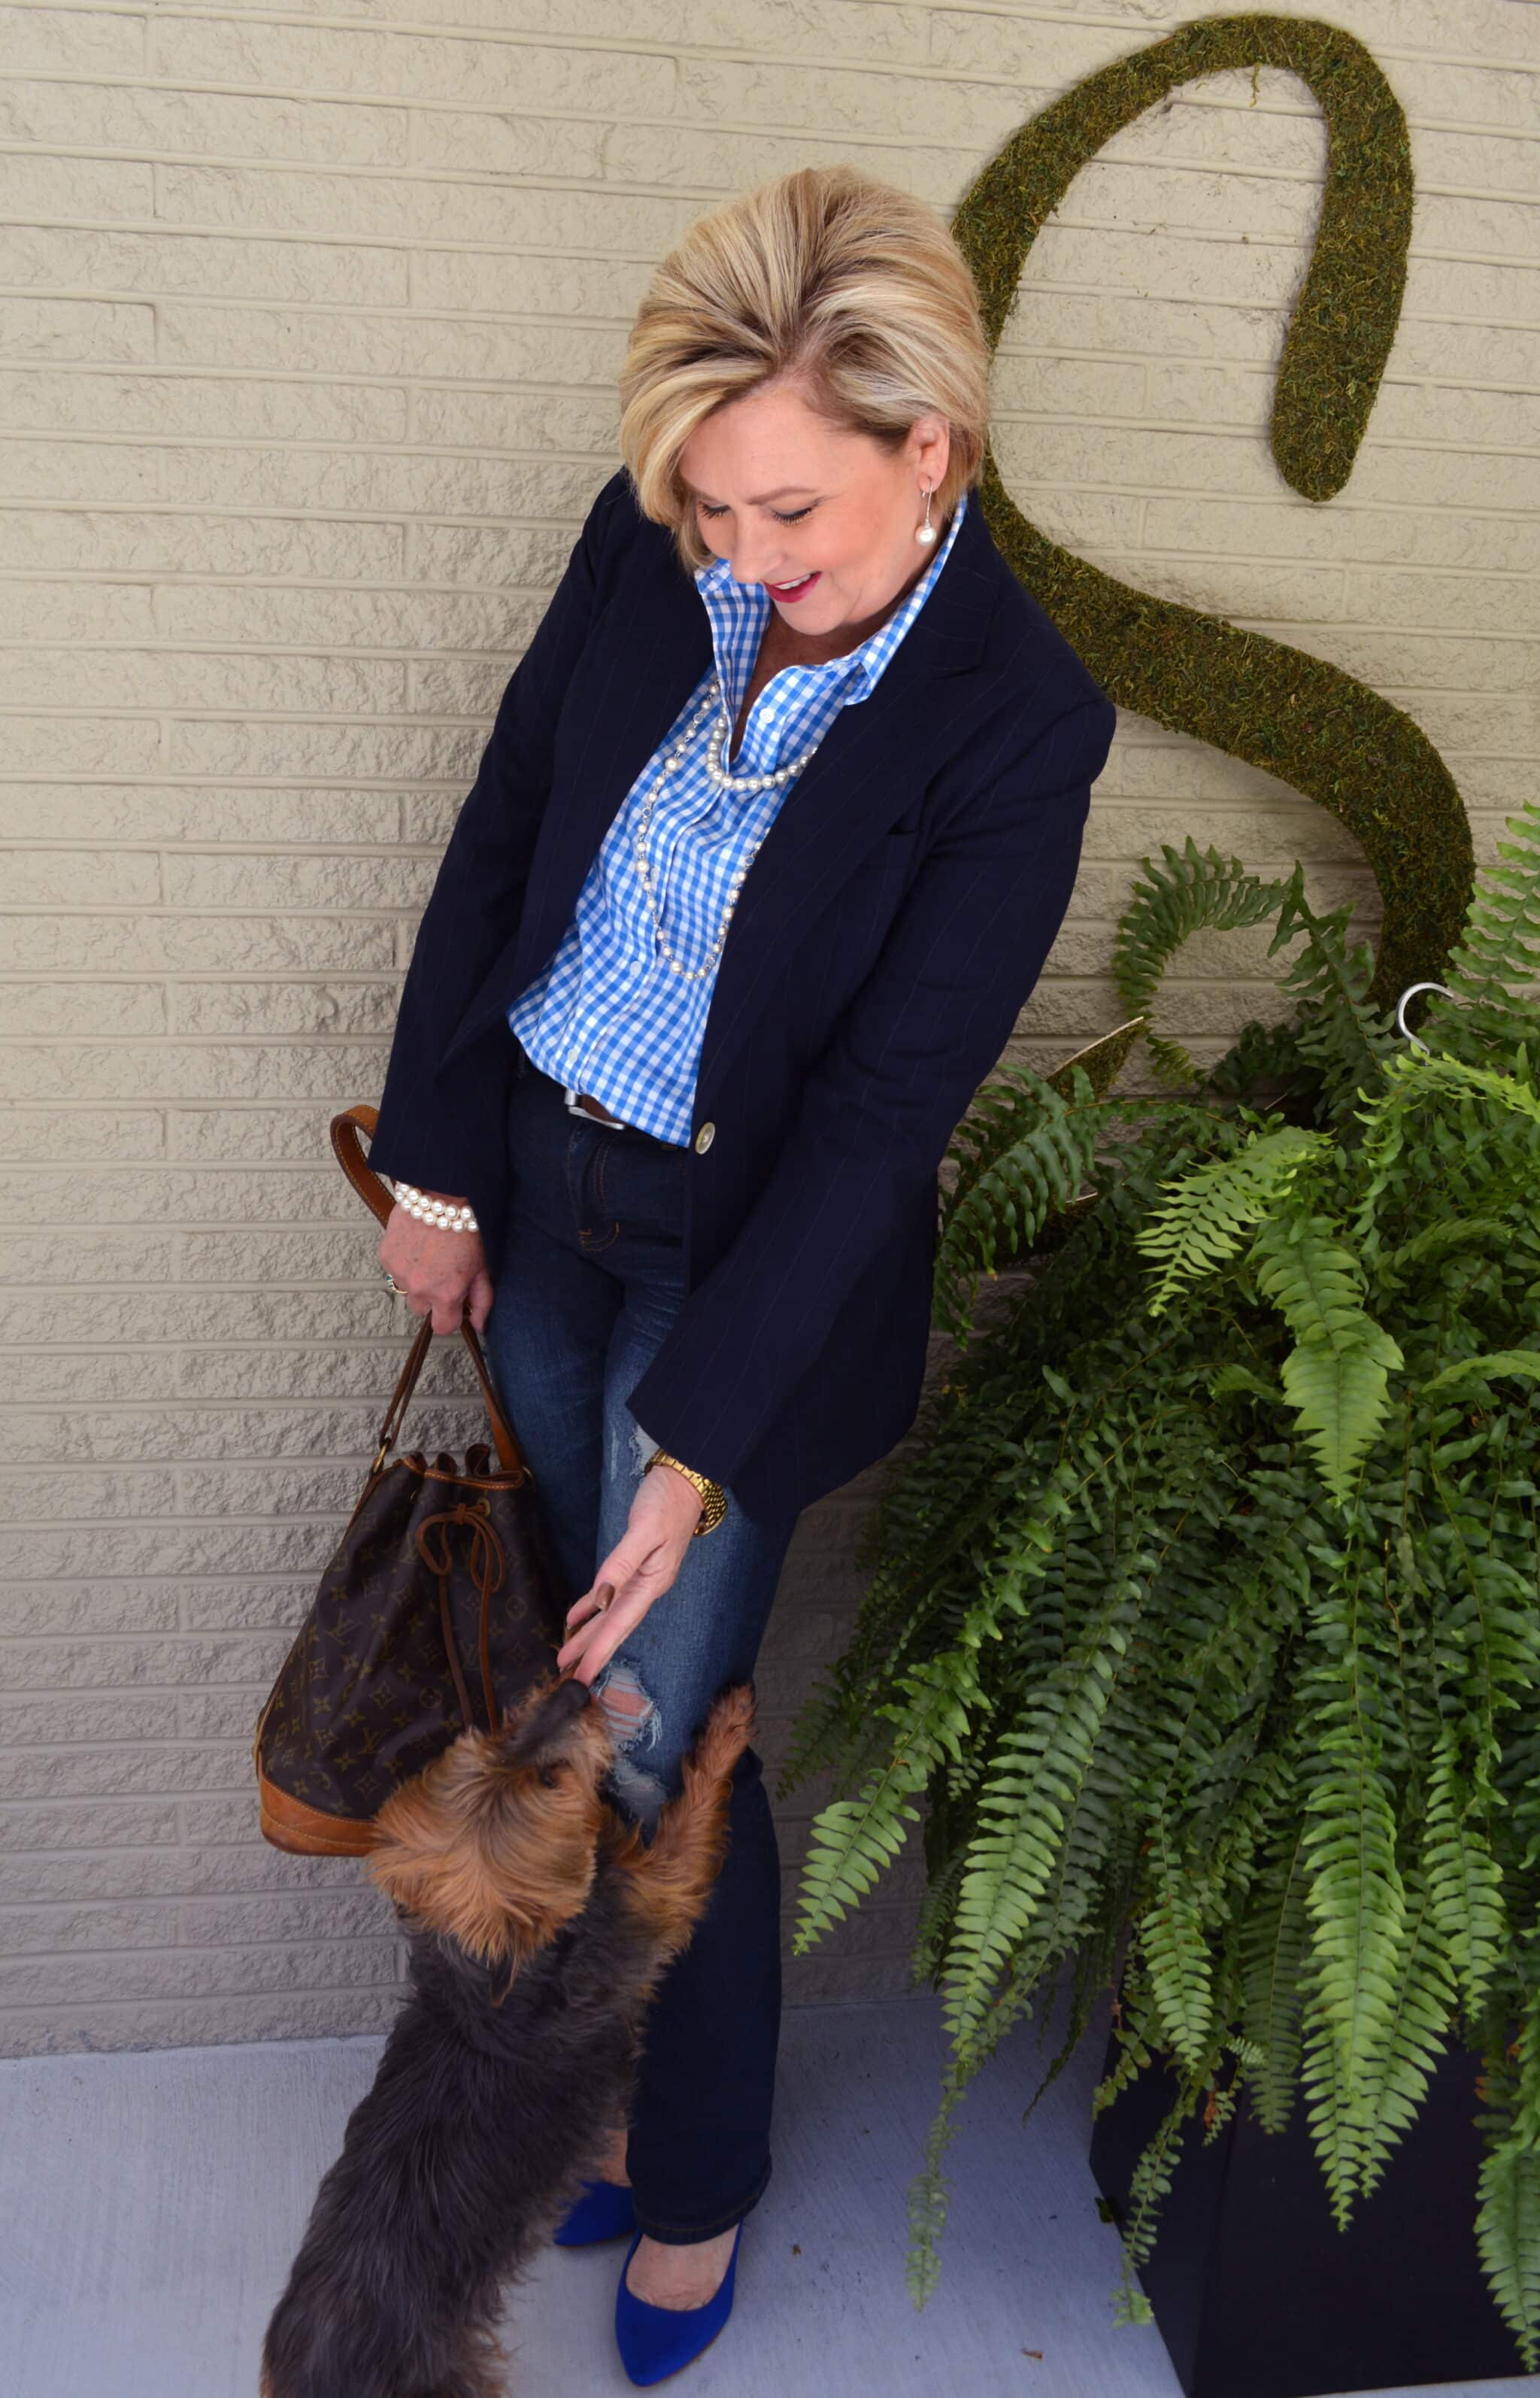 Over 40 Fashion Blogger, Tania Stephens, in a gingham shirt and navy blazer with a Yorkie dog